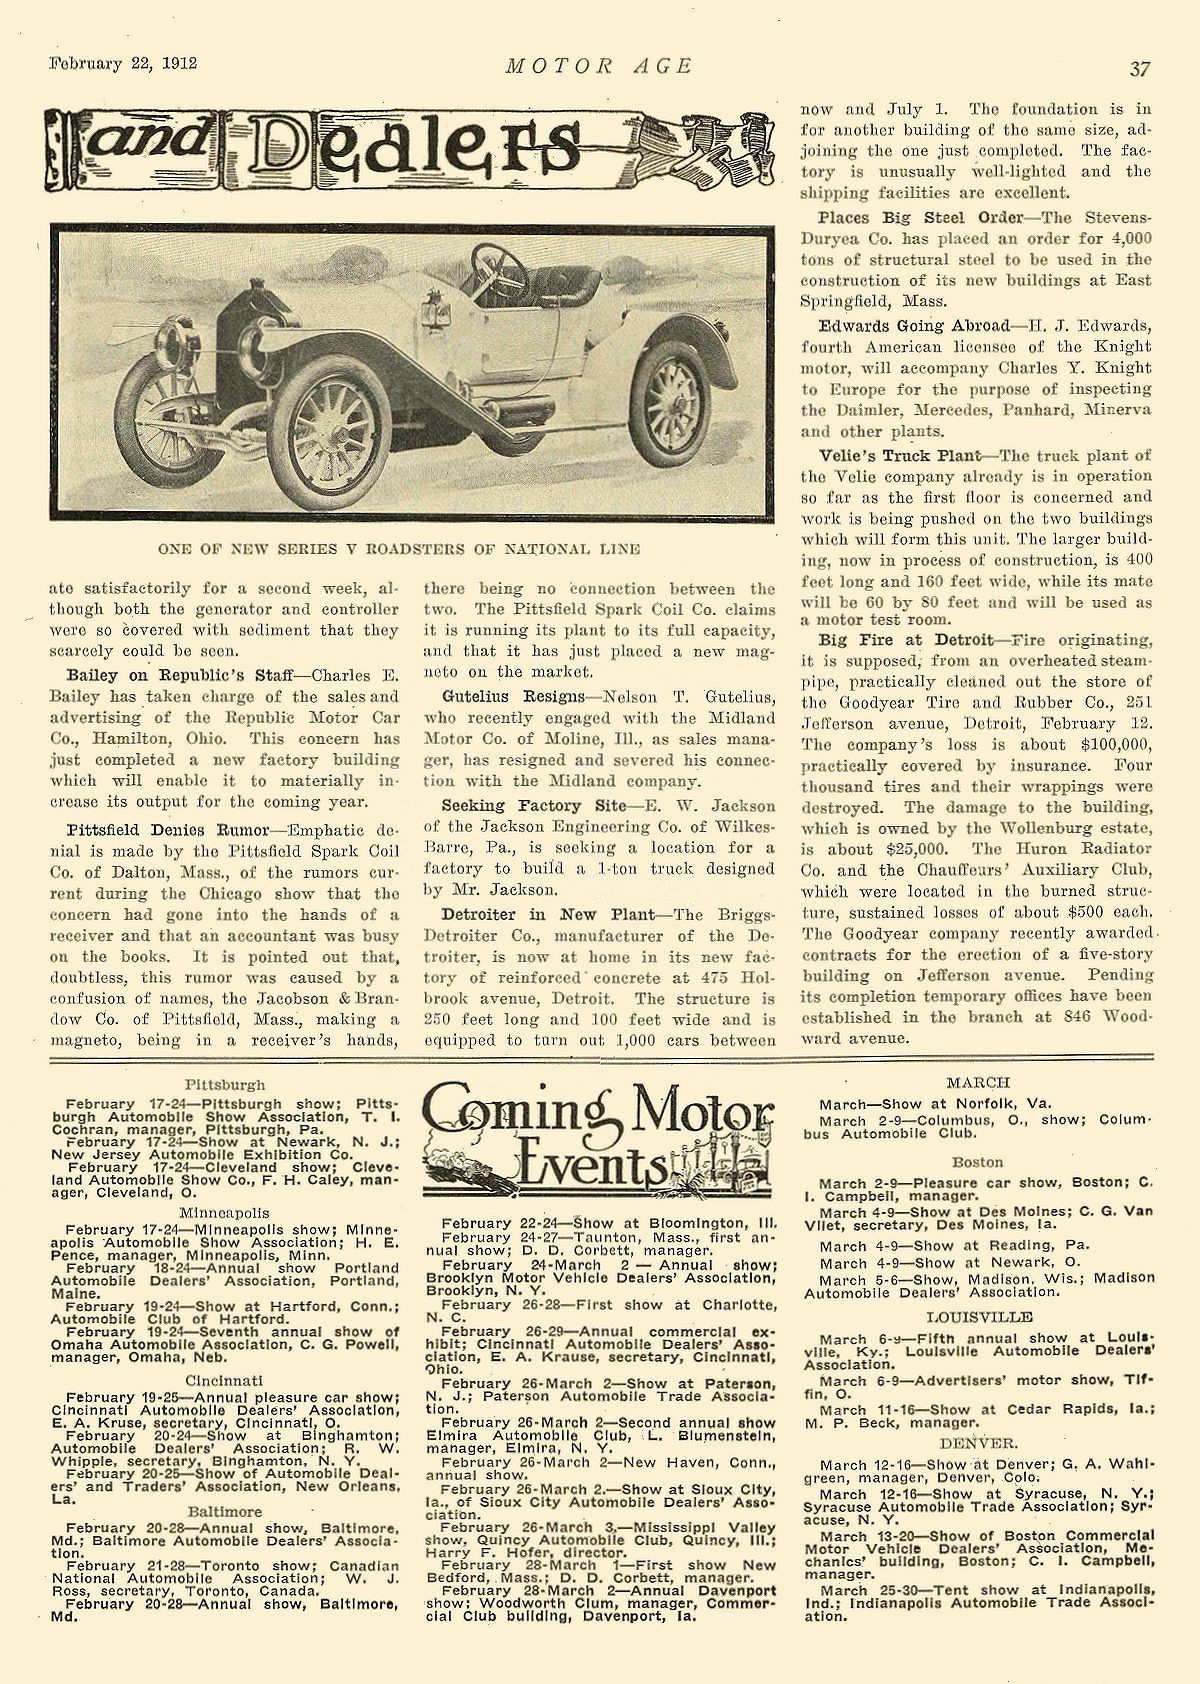 1912 2 22 NATIONAL ONE OF NEW SERIES V ROADSTERS OF NATIONAL LINE National Motor Vehicle Co. Indianapolis, IND MOTOR AGE February 22, 1912 8.25″x12″ page 37